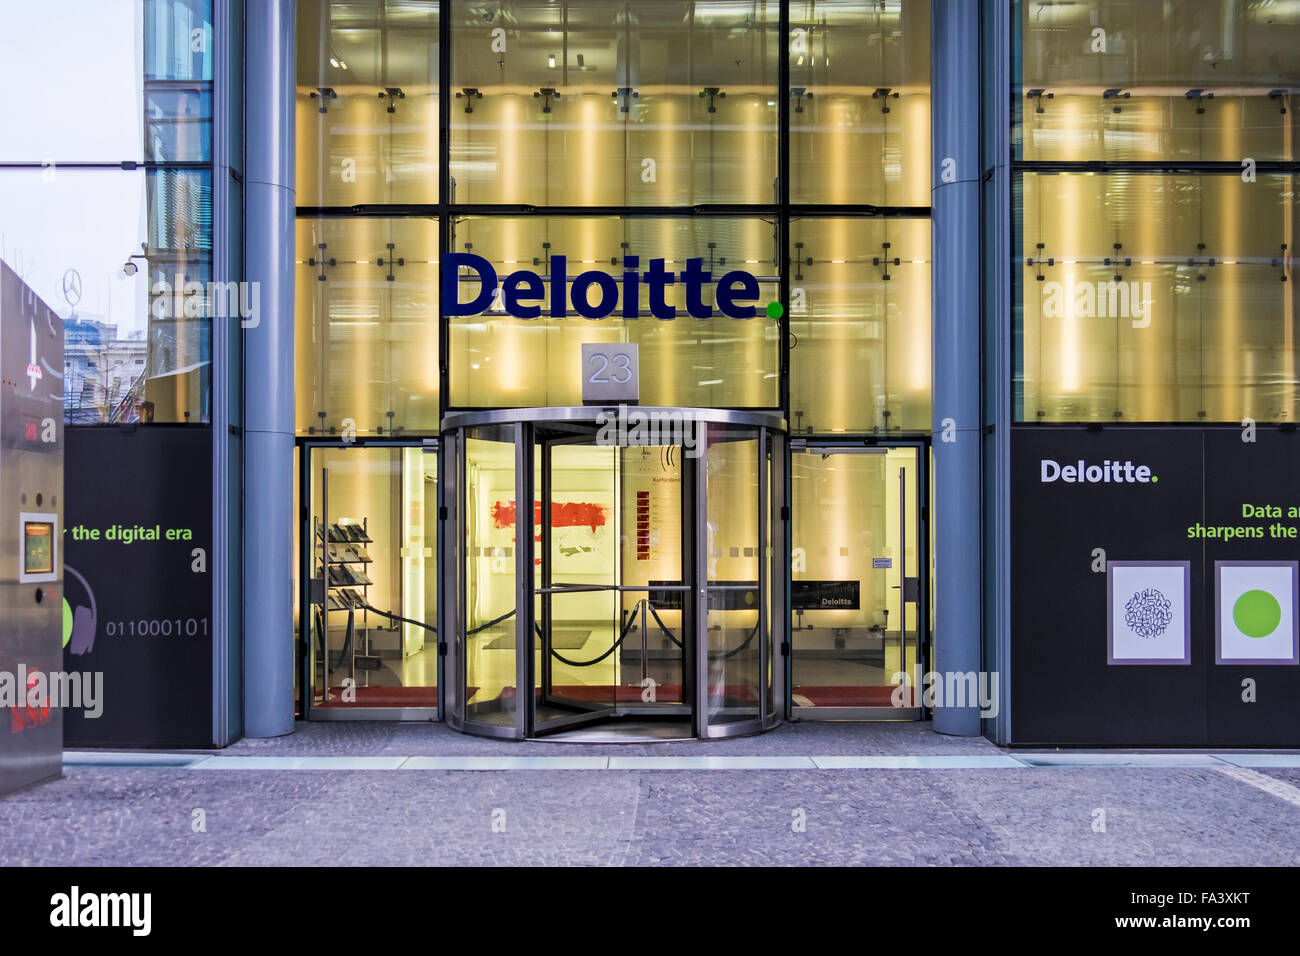 Deloitte accountants office exterior at the Neues Kranzler Eck modern shopping centre, Berlin - Stock Image